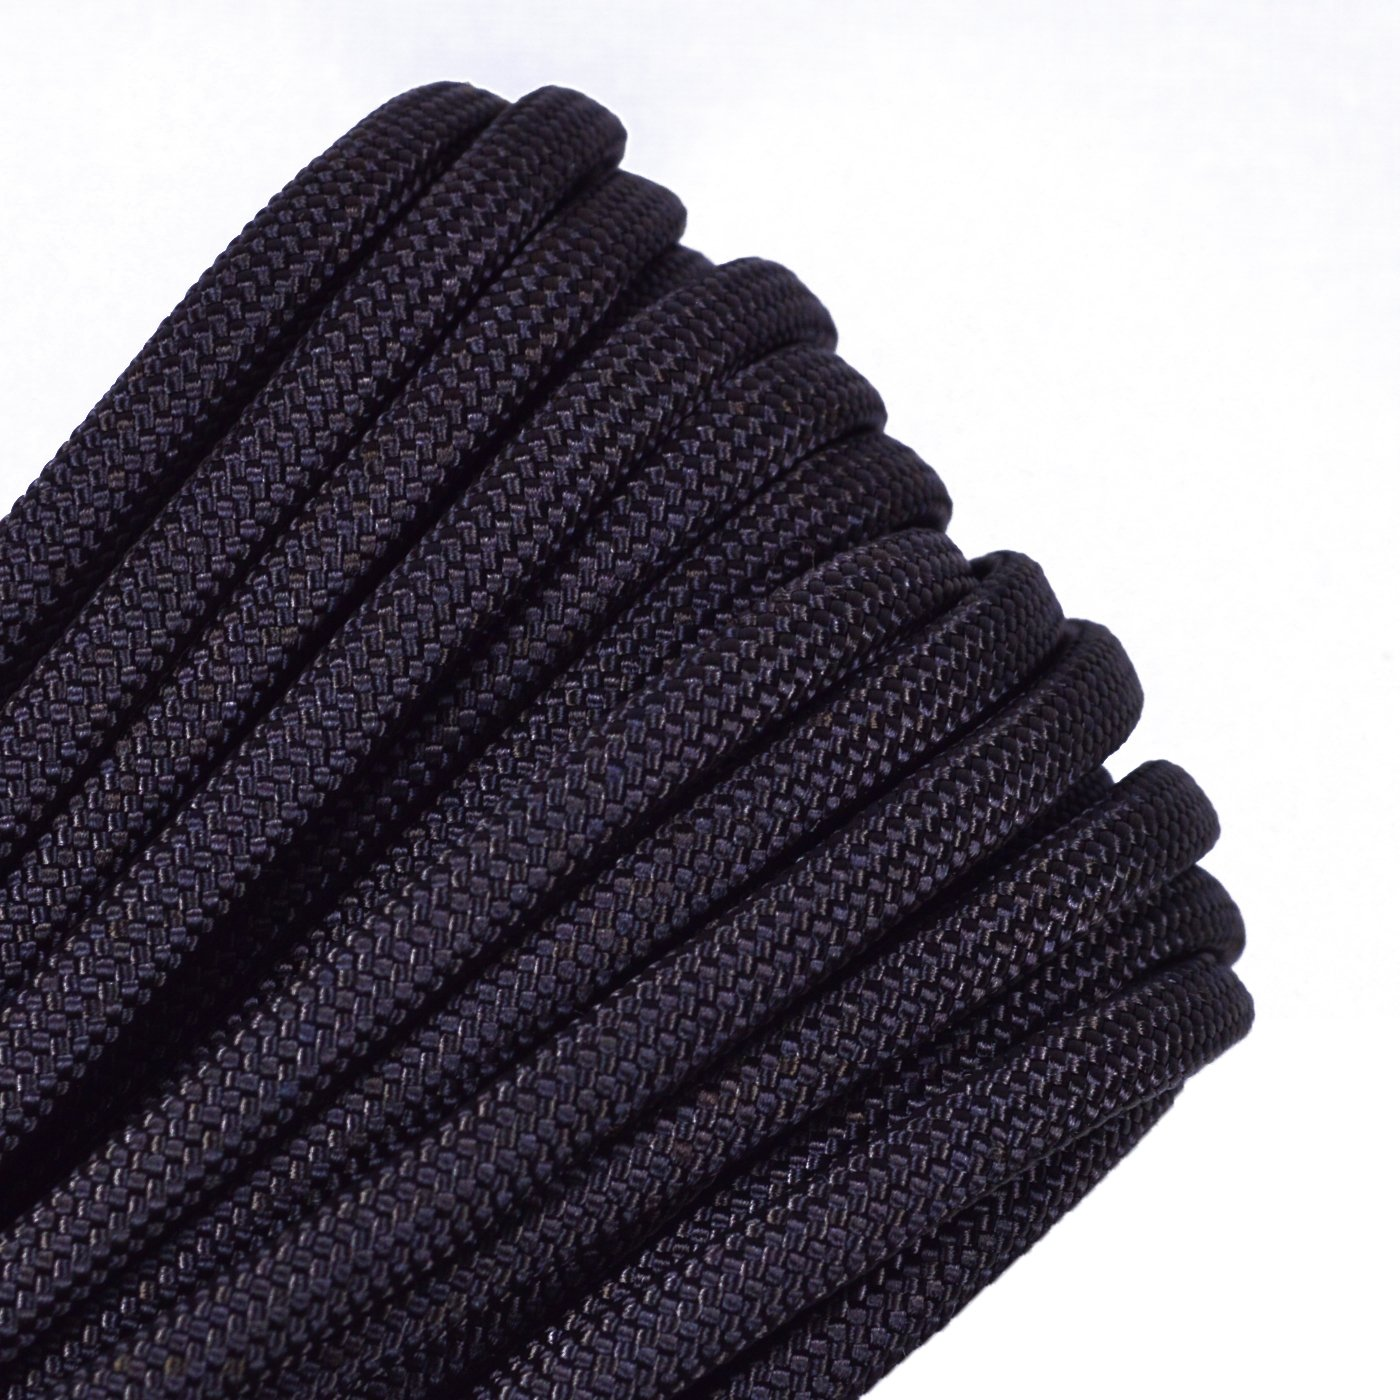 Solid Colors Paracord - Type III Parachute Cord - Acid Brown - 10 Feet by BoredParacord (Image #1)